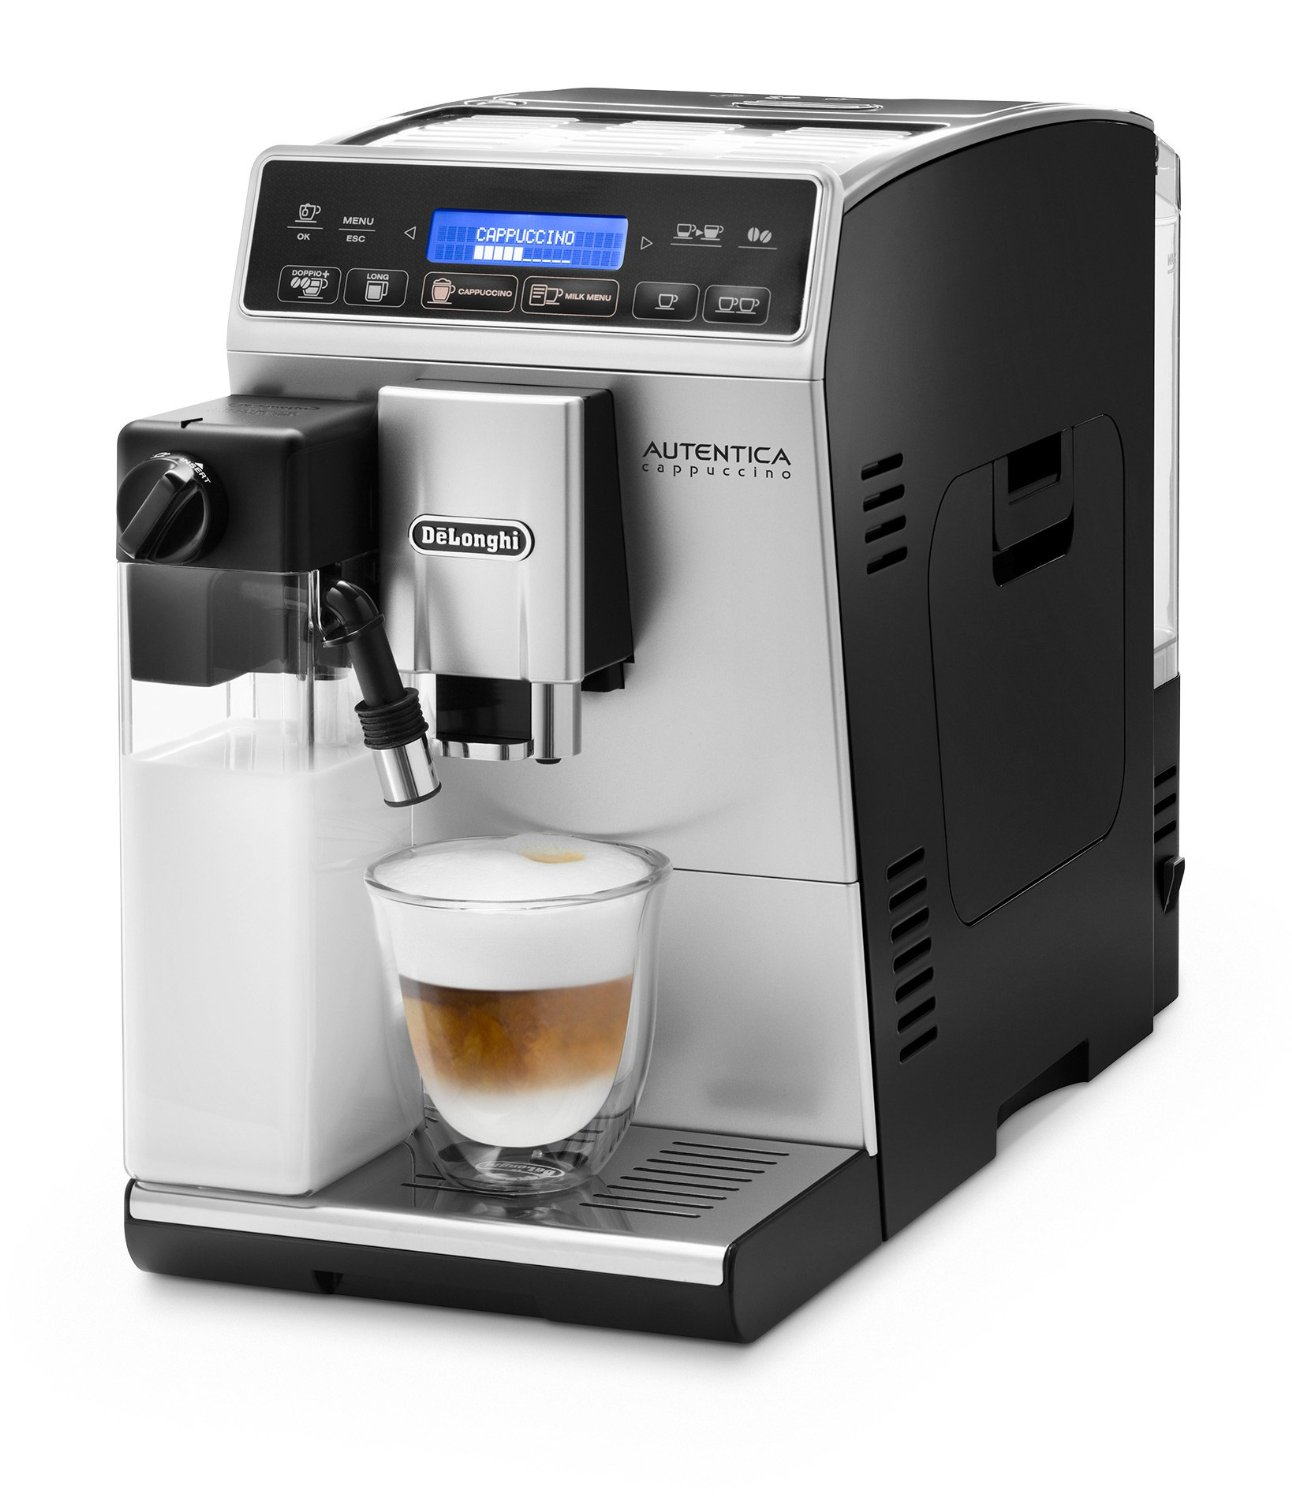 delonghi etam autentica cappuccino test. Black Bedroom Furniture Sets. Home Design Ideas